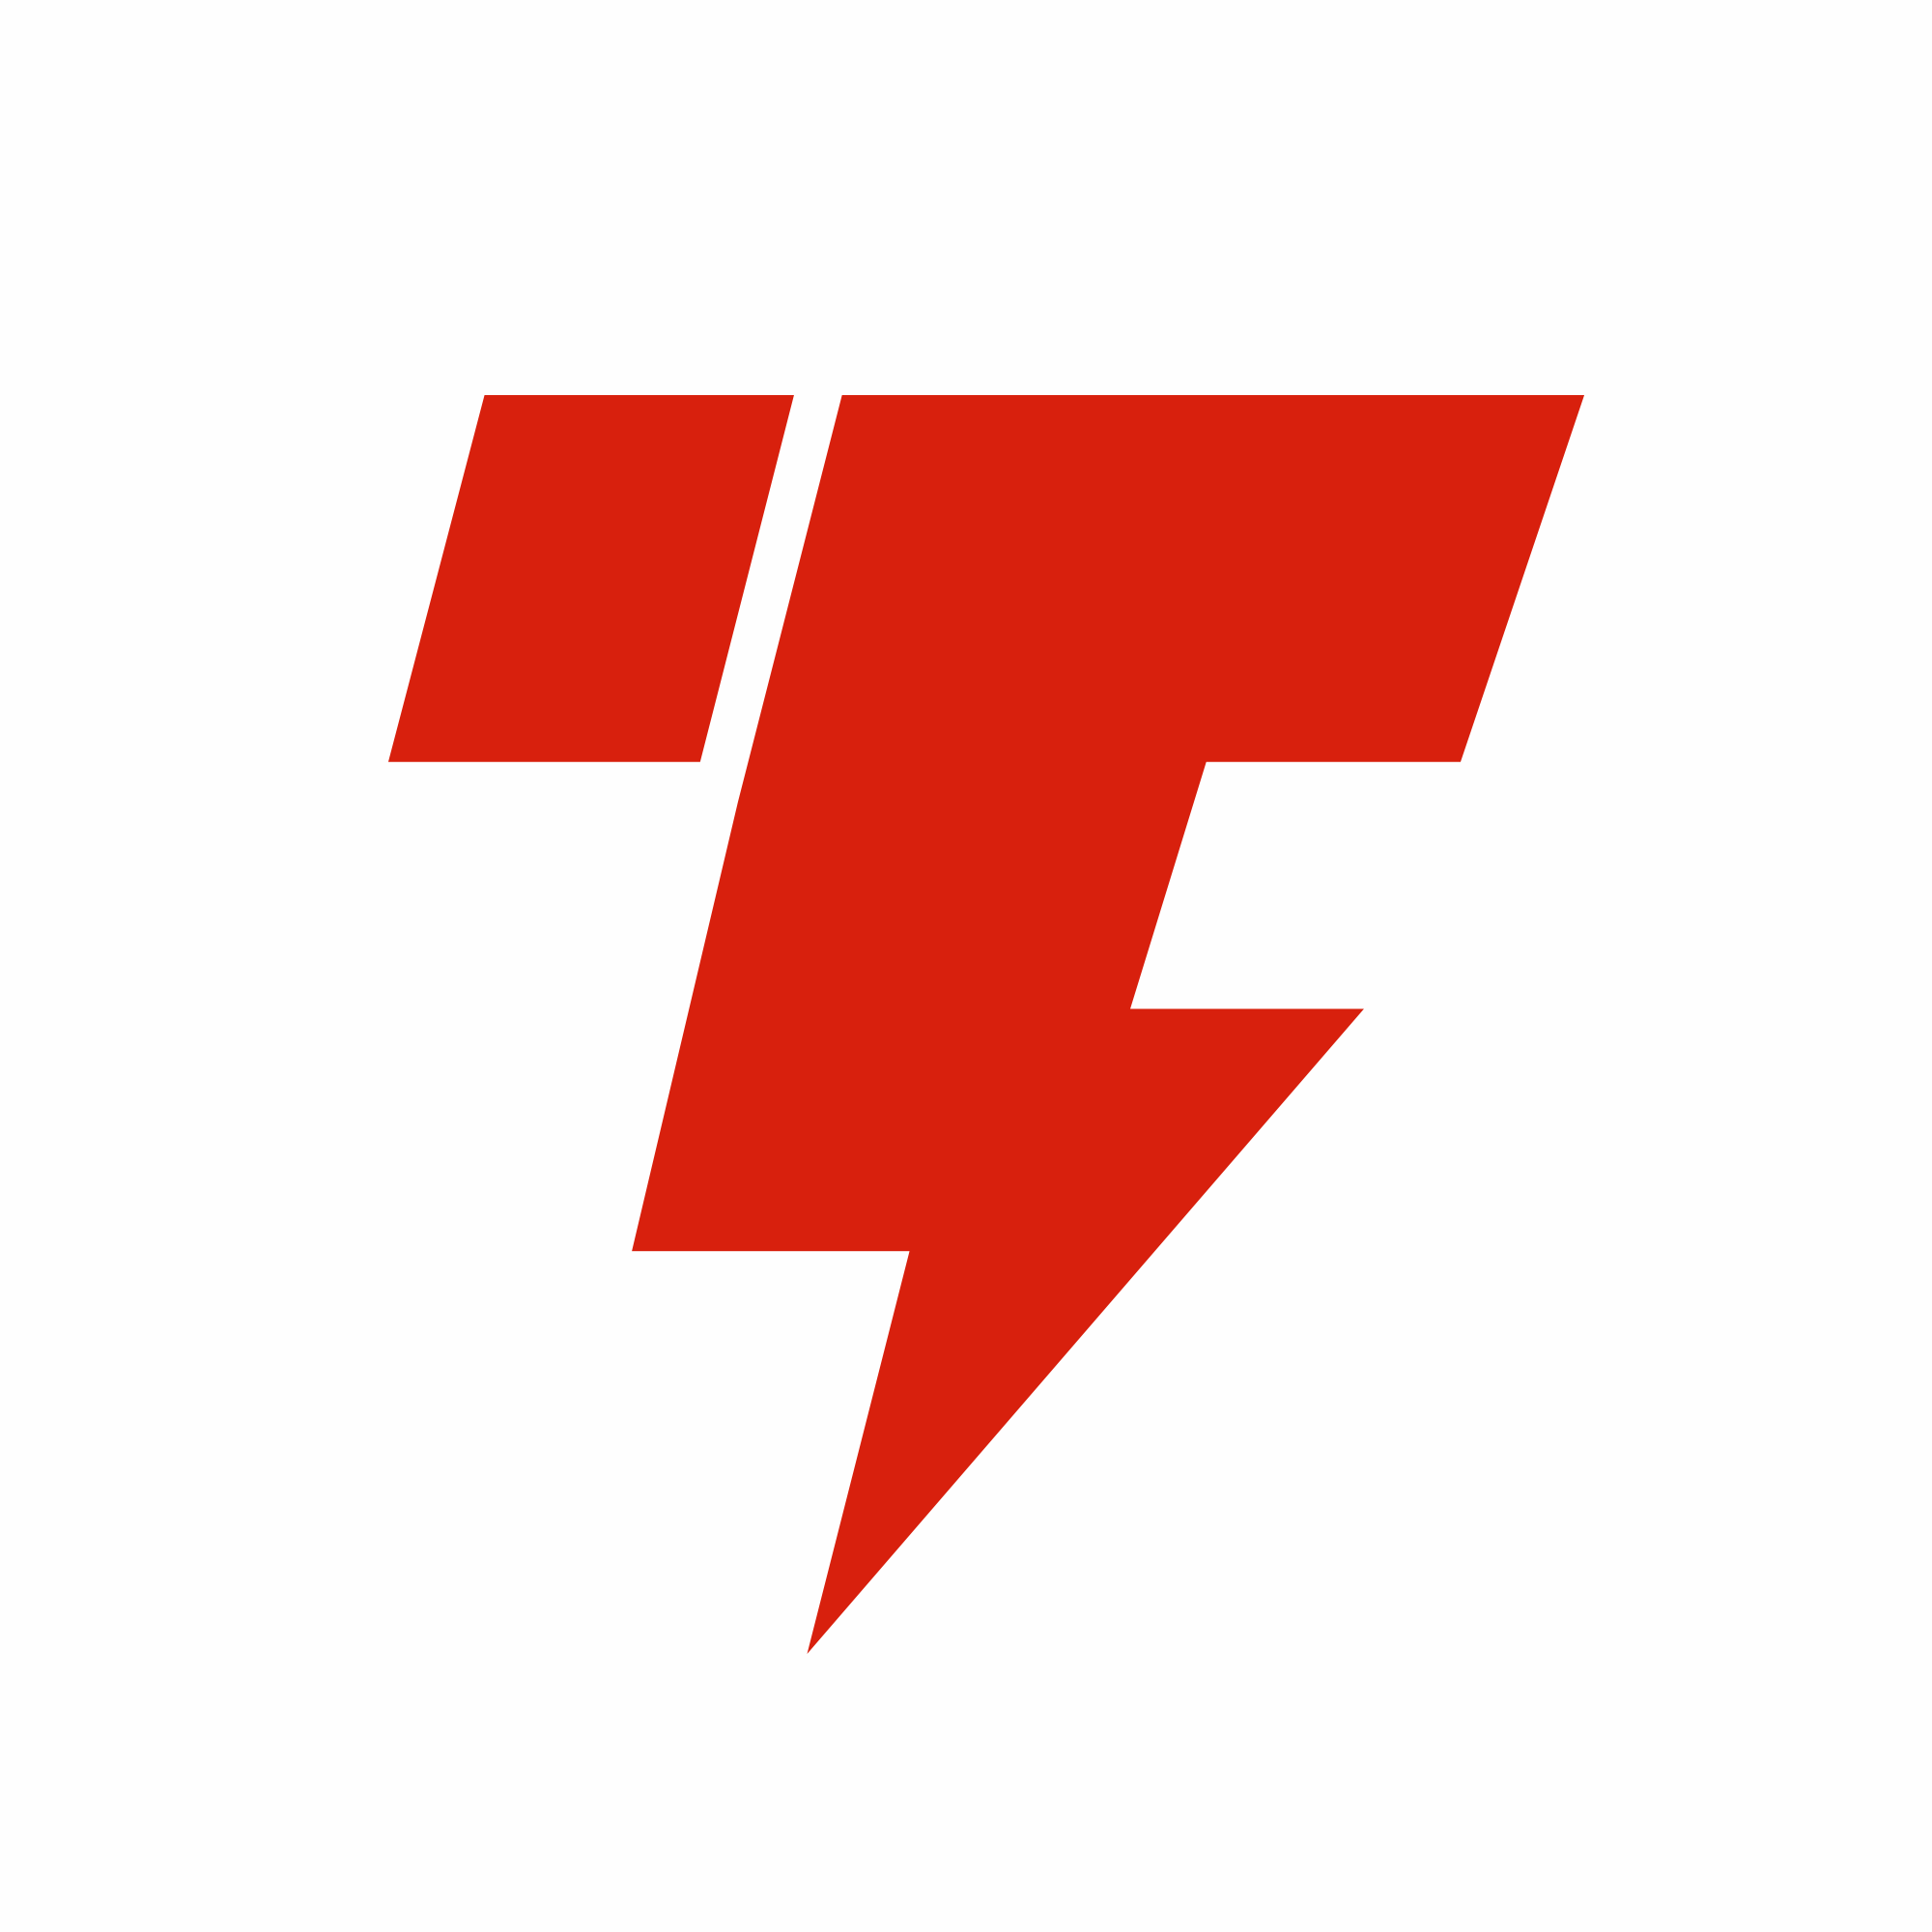 Energy star ullisted 10w11w 4inch led gimbal recessed retrofit